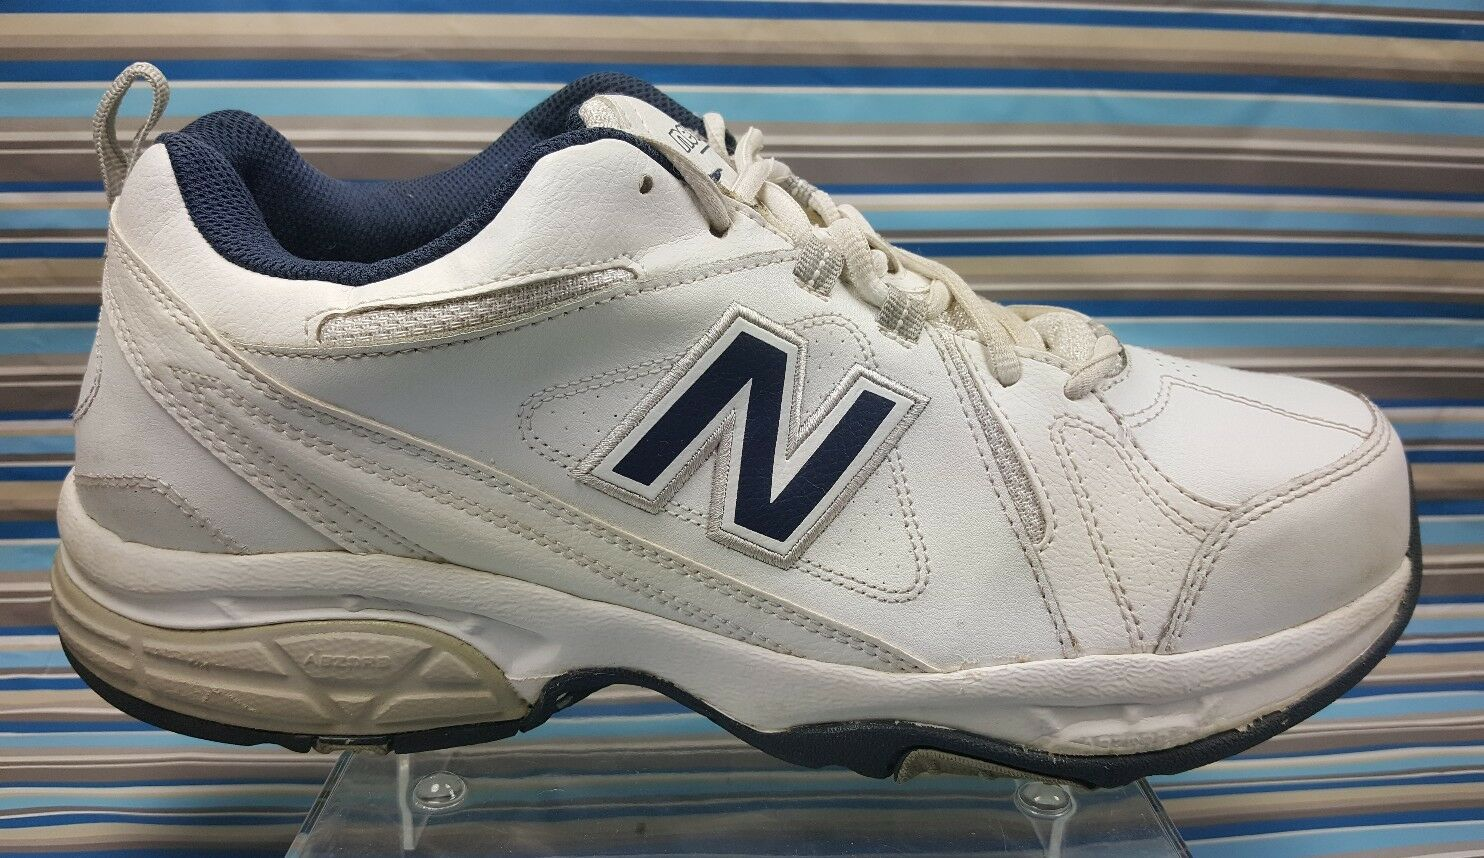 NEW BALANCE 608 V3 RUNNING WALKING TRAINING MEN'S WHITE LEATHER SHOES 12 4E